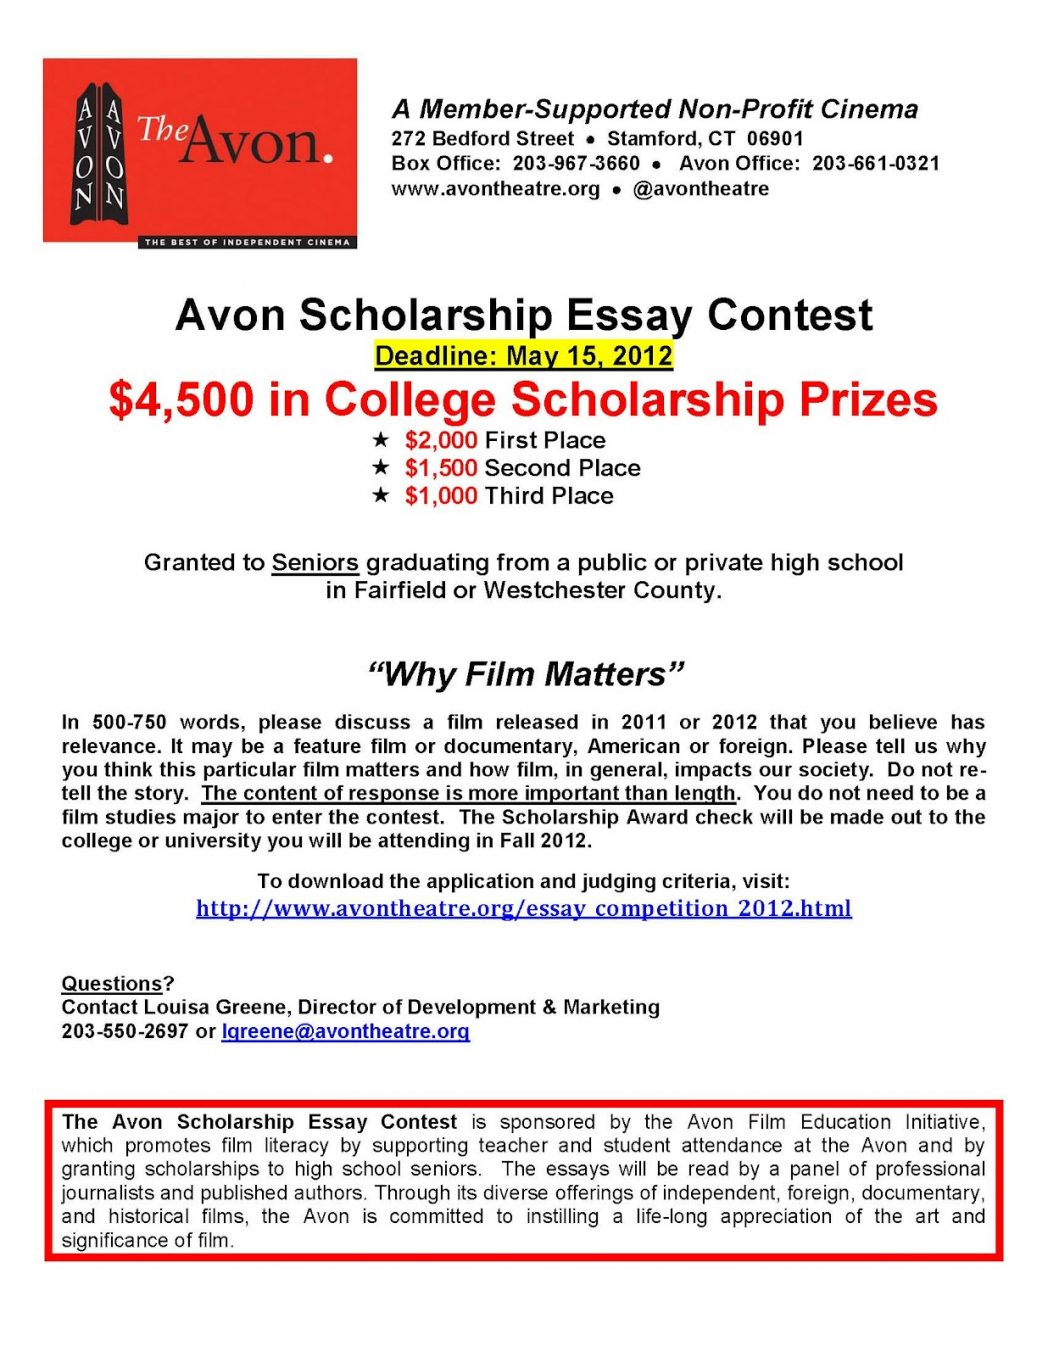 003 Easy Scholarships No Essay Example College Scholarship Prowler Avonscholarshipessaycontest2012 For High School Students Striking 2019 2018 Full